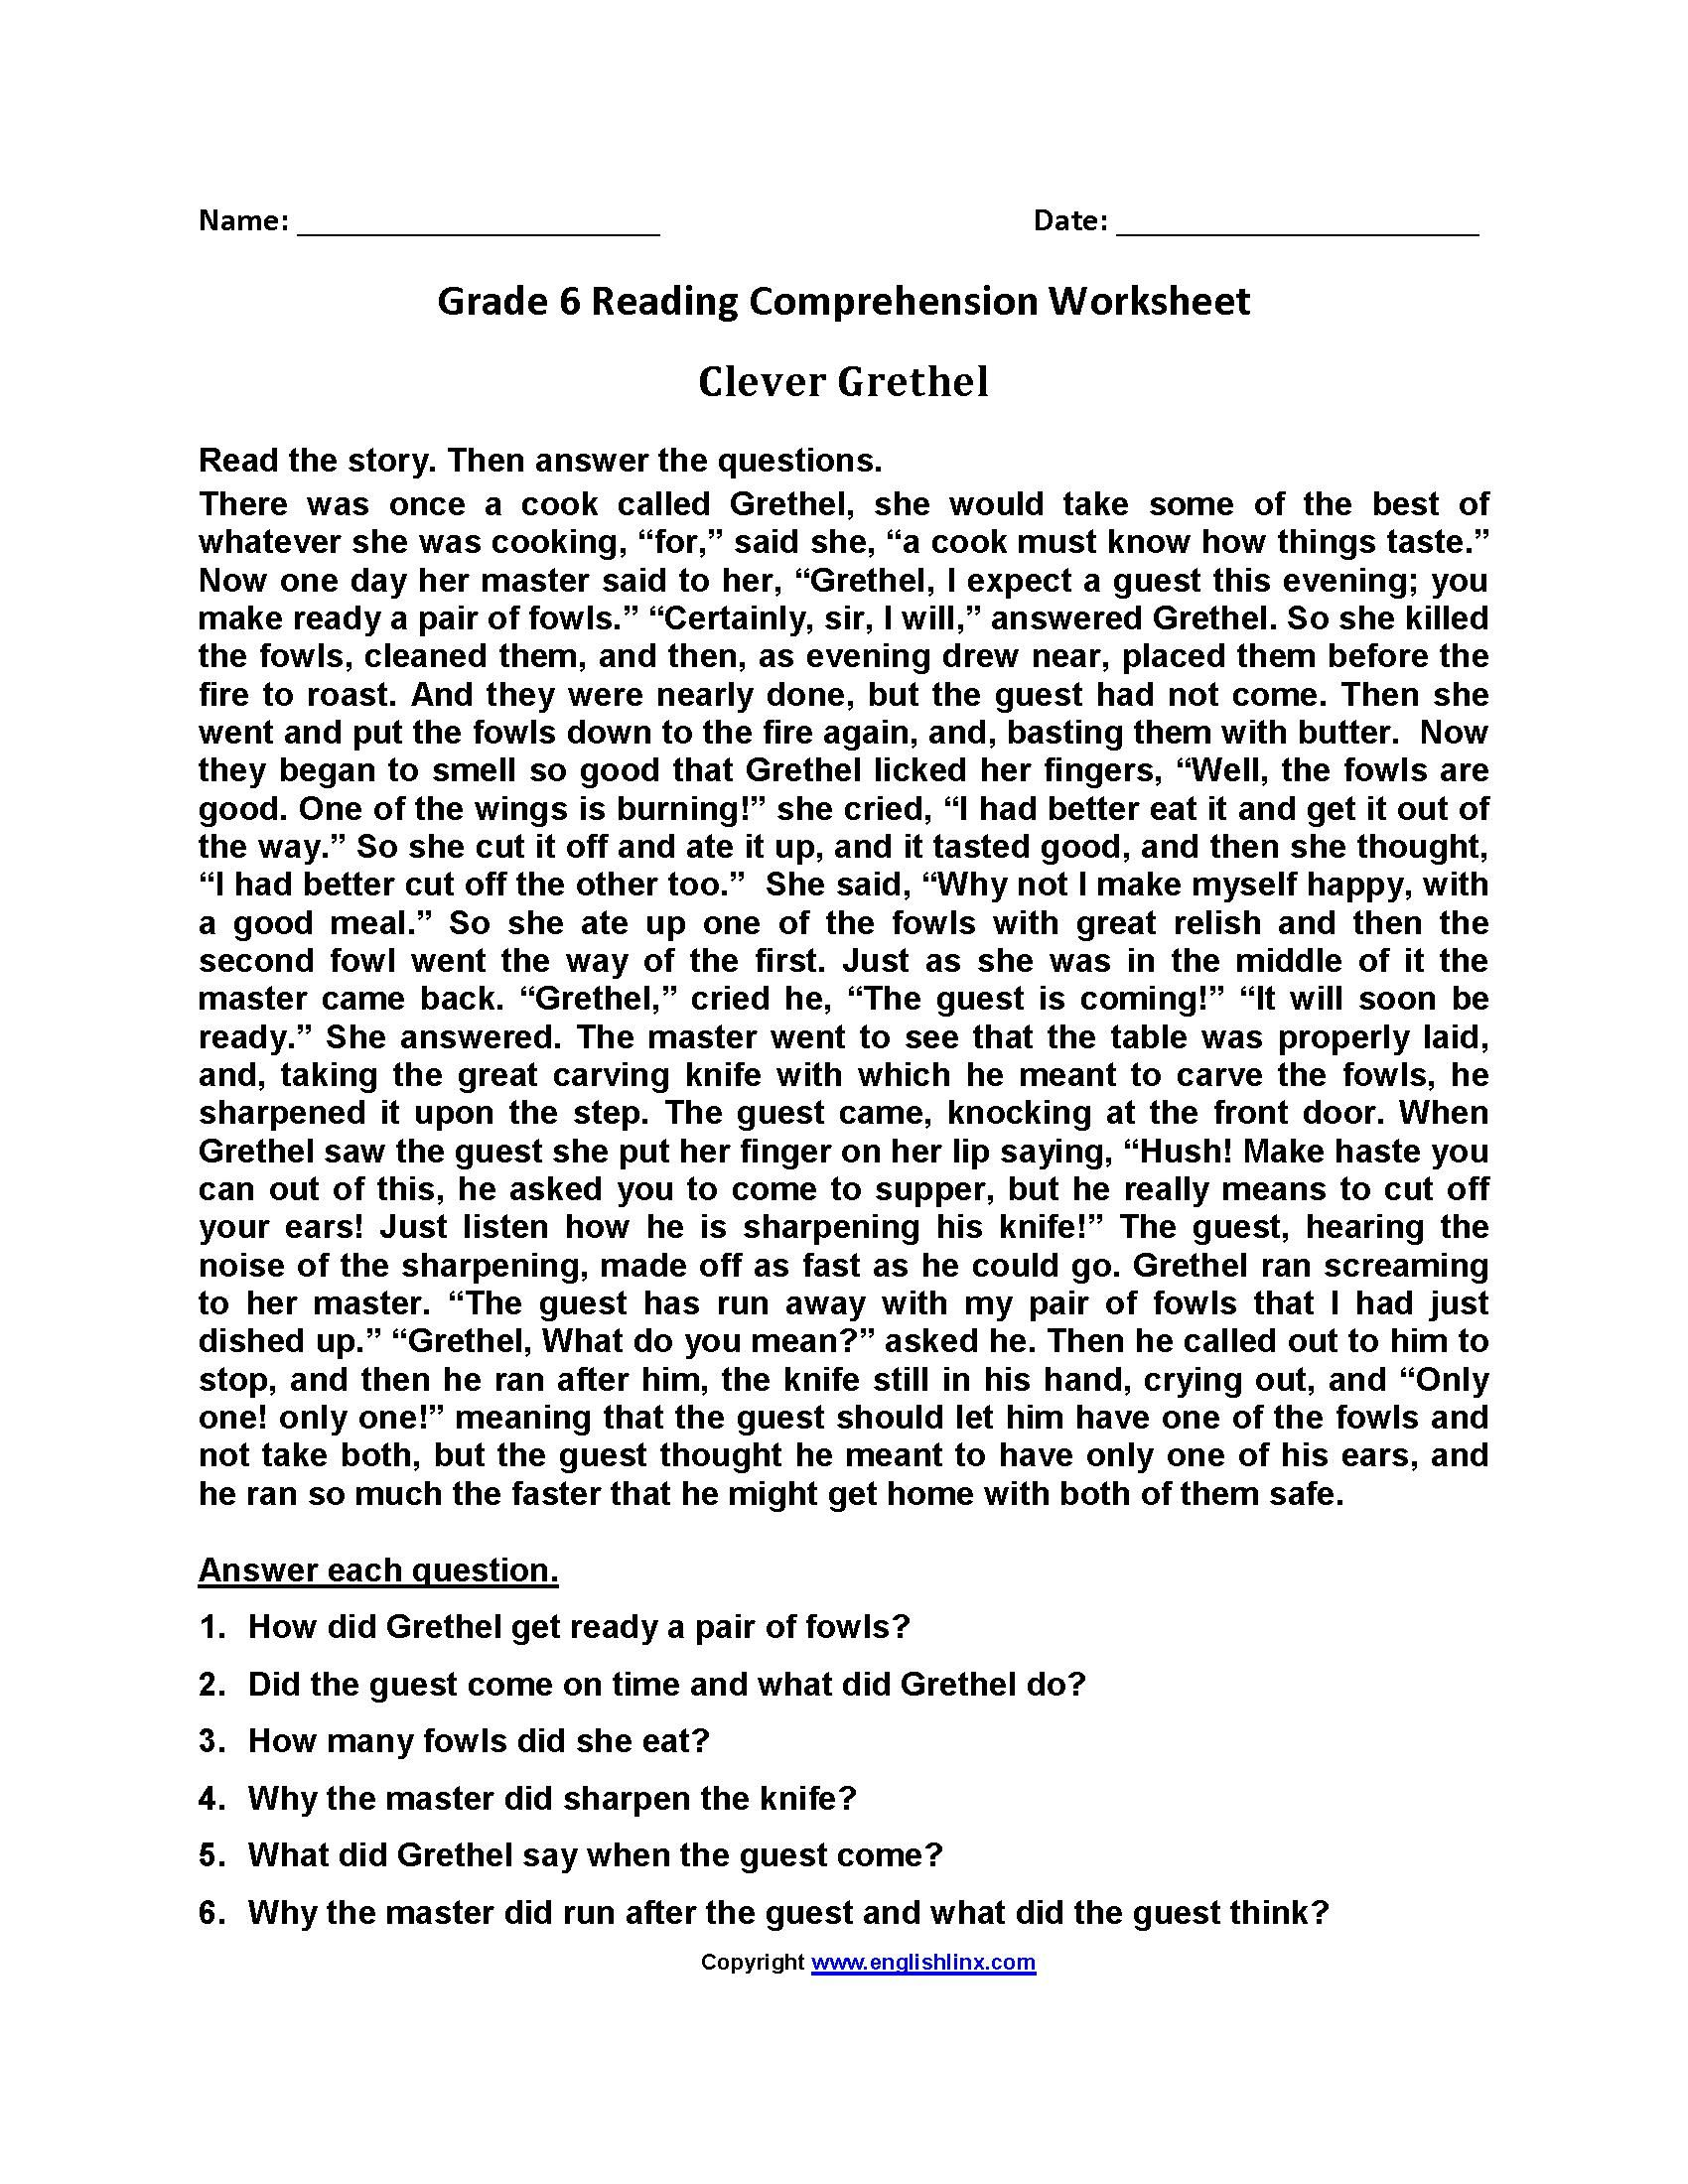 Free Printable 6th Grade Reading Worksheets With Answer